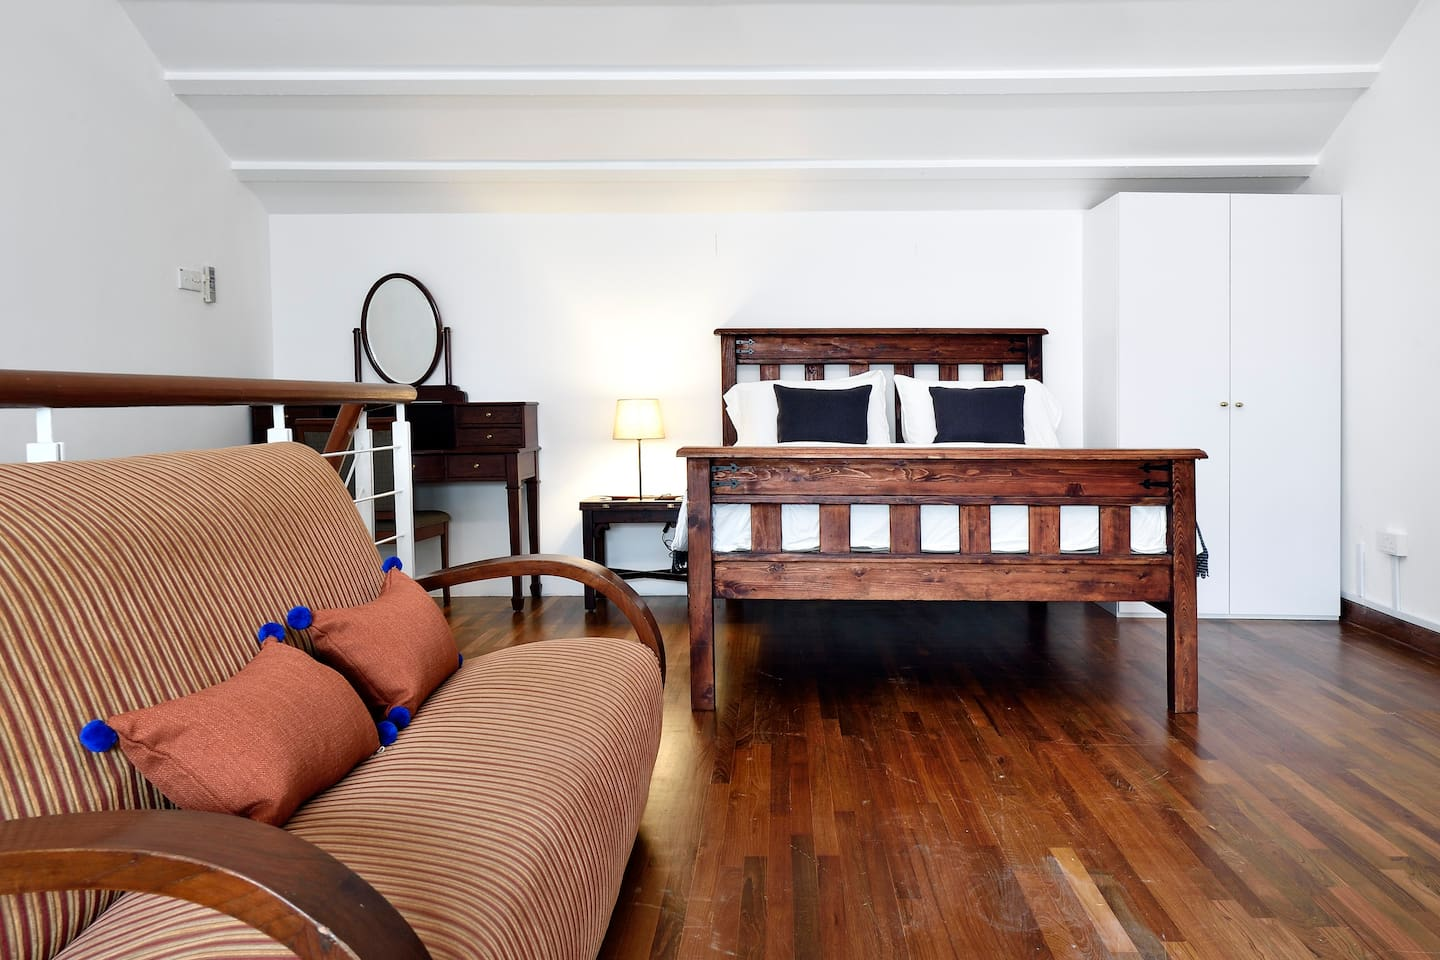 Our Bencoolen Suite with a Queen size bed and antique teakwood furniture from the iconic Raffles Hotel!